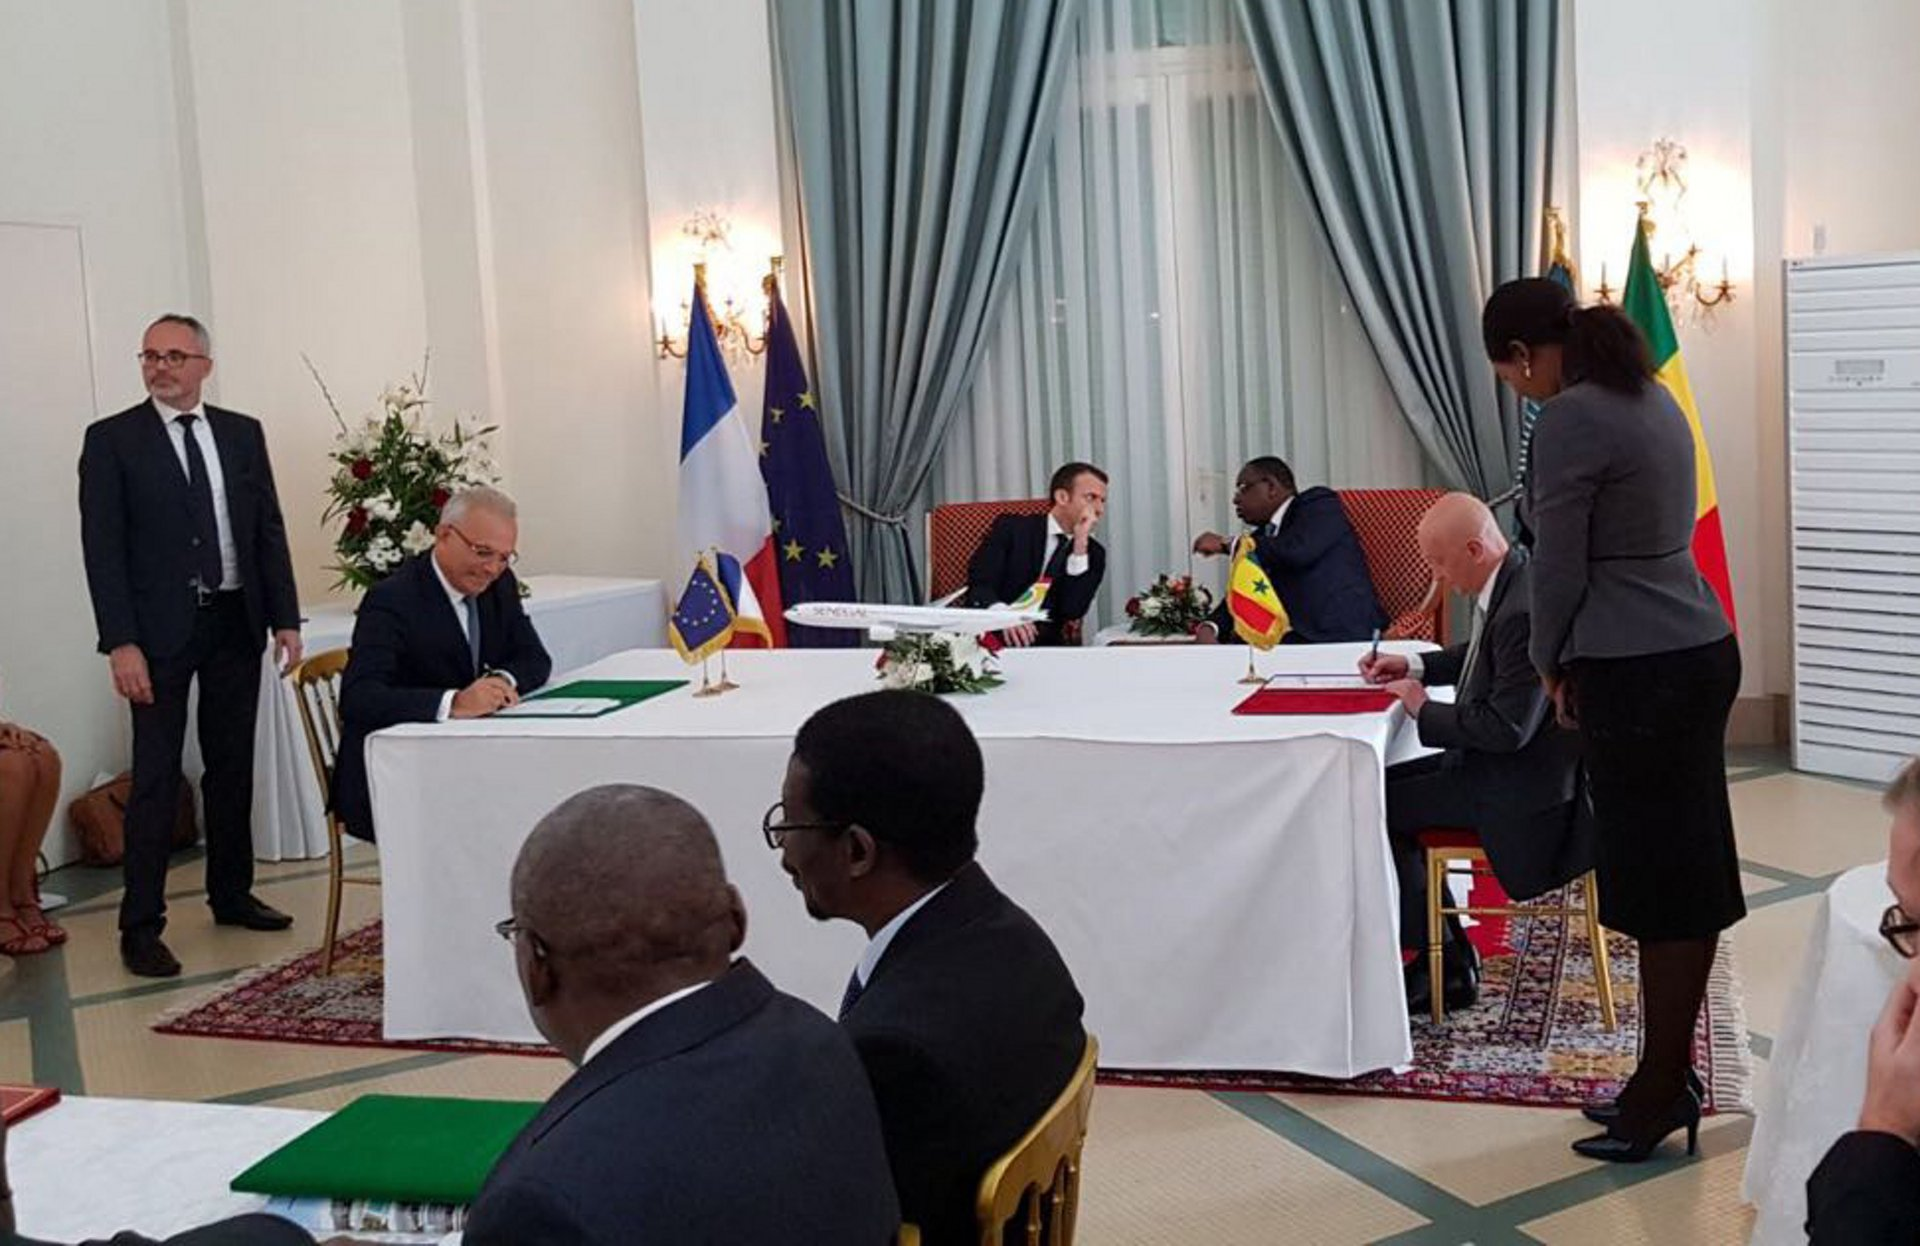 Air Sénégal's agreement for two A330neo aircraft was signed in Dakar by Philippe Bohn, CEO Air Sénégal and Fouad Attar, Head of Commercial Aircraft Airbus Africa Middle East, in the presence of the President of the French Republic, Emmanuel Macron on a state visit to Senegal, and Macky Sall, President of the Republic of Senegal